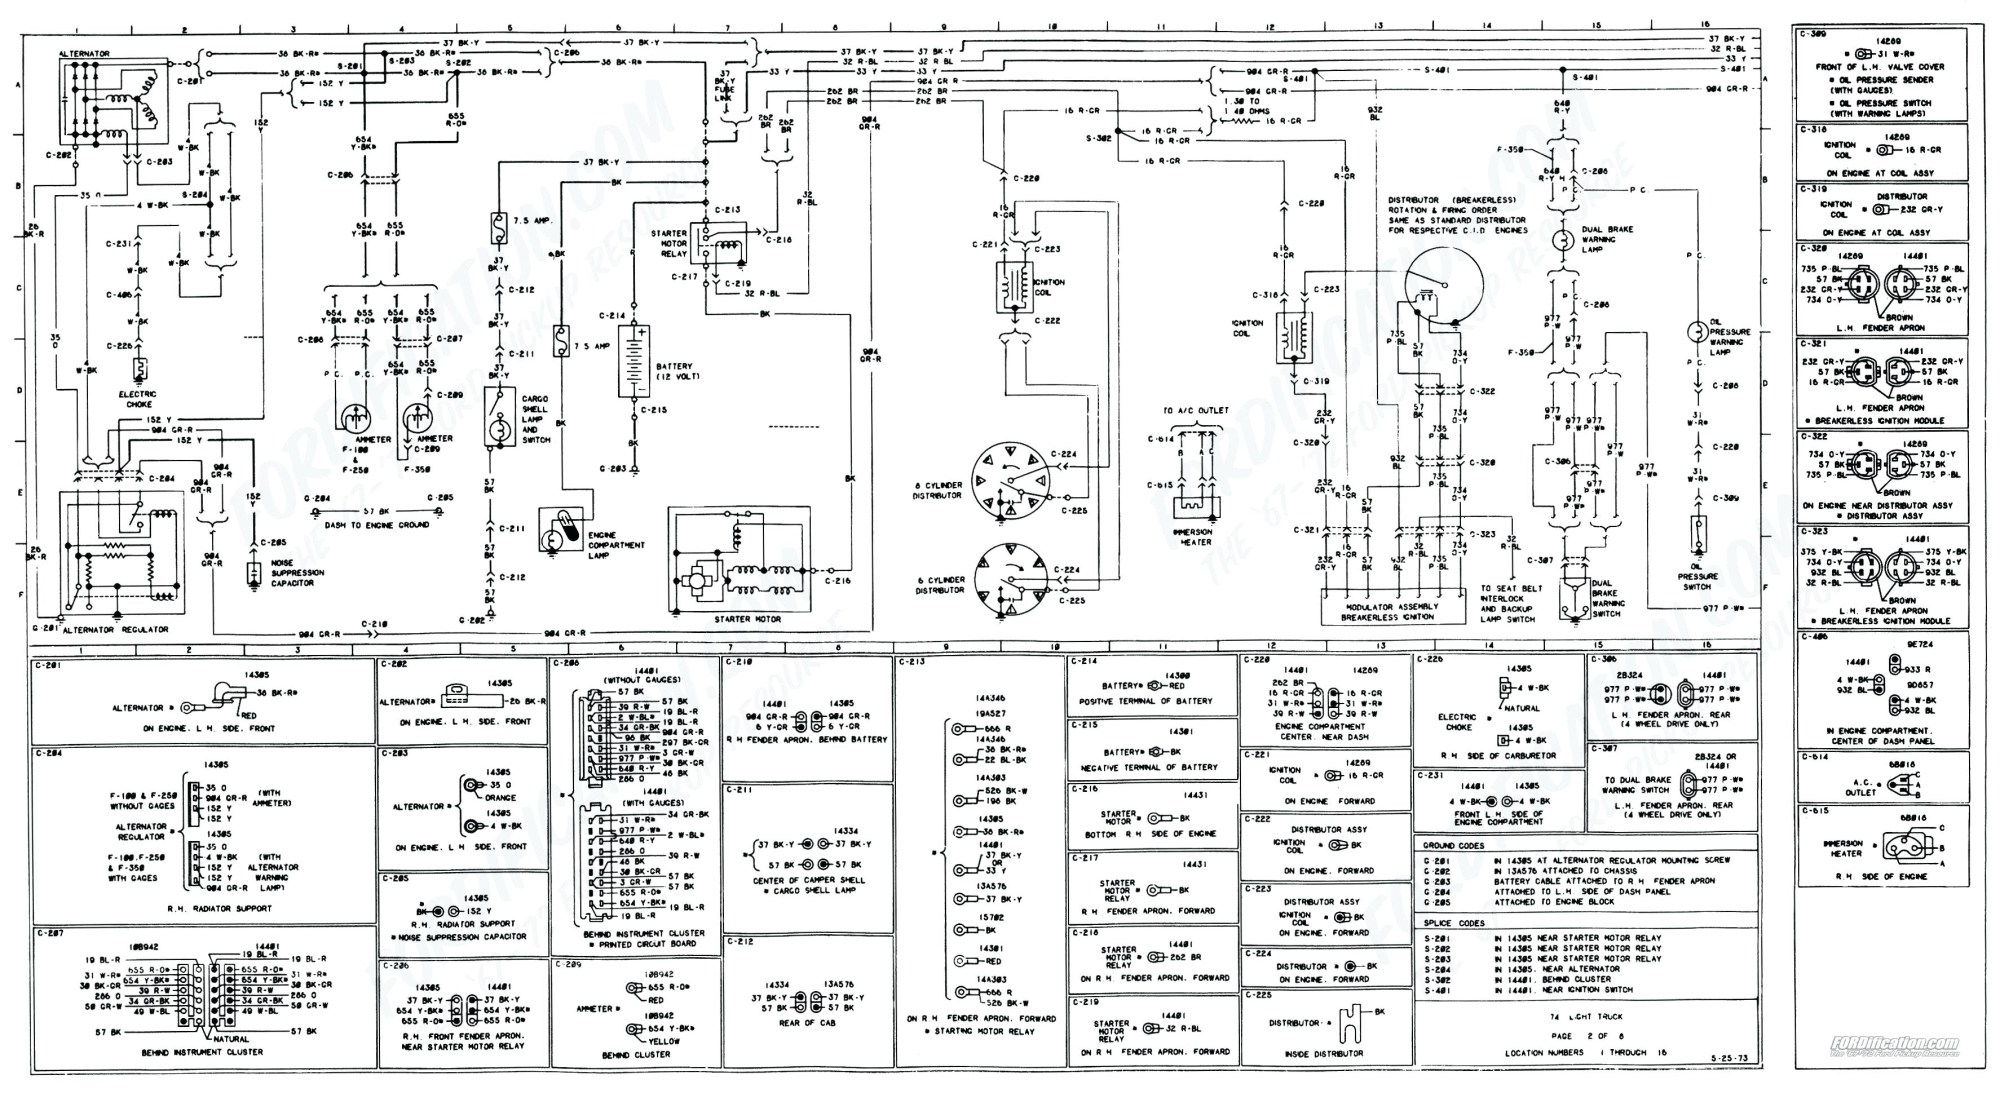 hight resolution of 2004 f750 wiring schematic wiring diagram blog 2015 ford f750 wiring diagram ford f750 wiring diagram